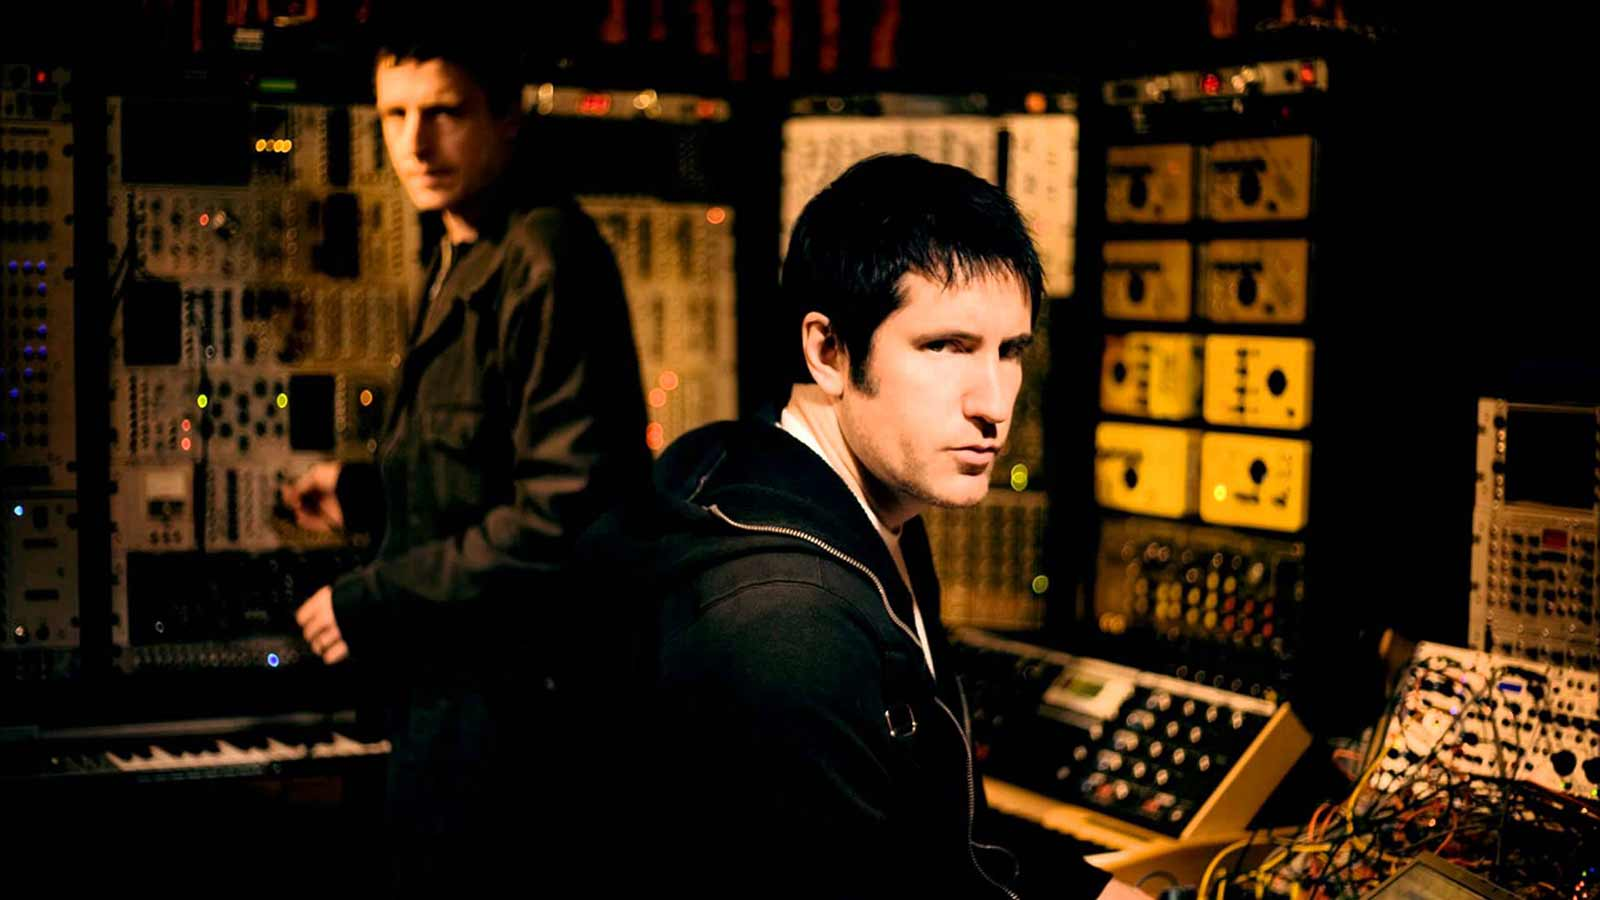 Trent Reznor Amp Atticus Ross Before The Flood Review